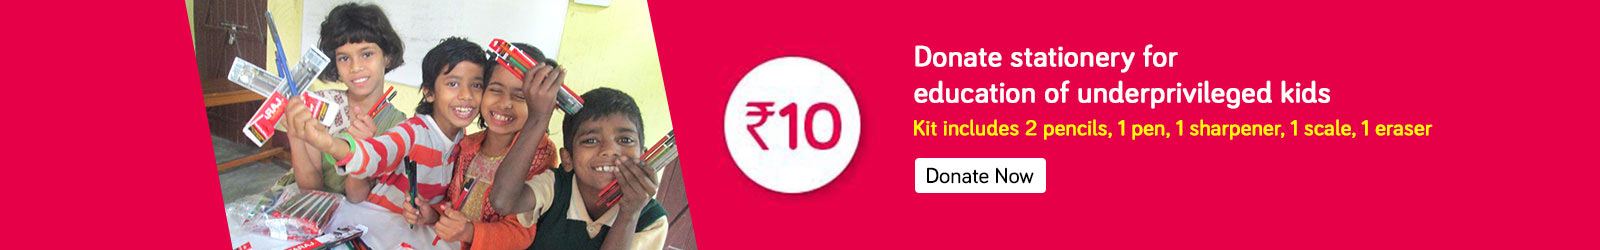 Contribute Stationery Kits At Rs 10 For Education Of Underprivileged Kids